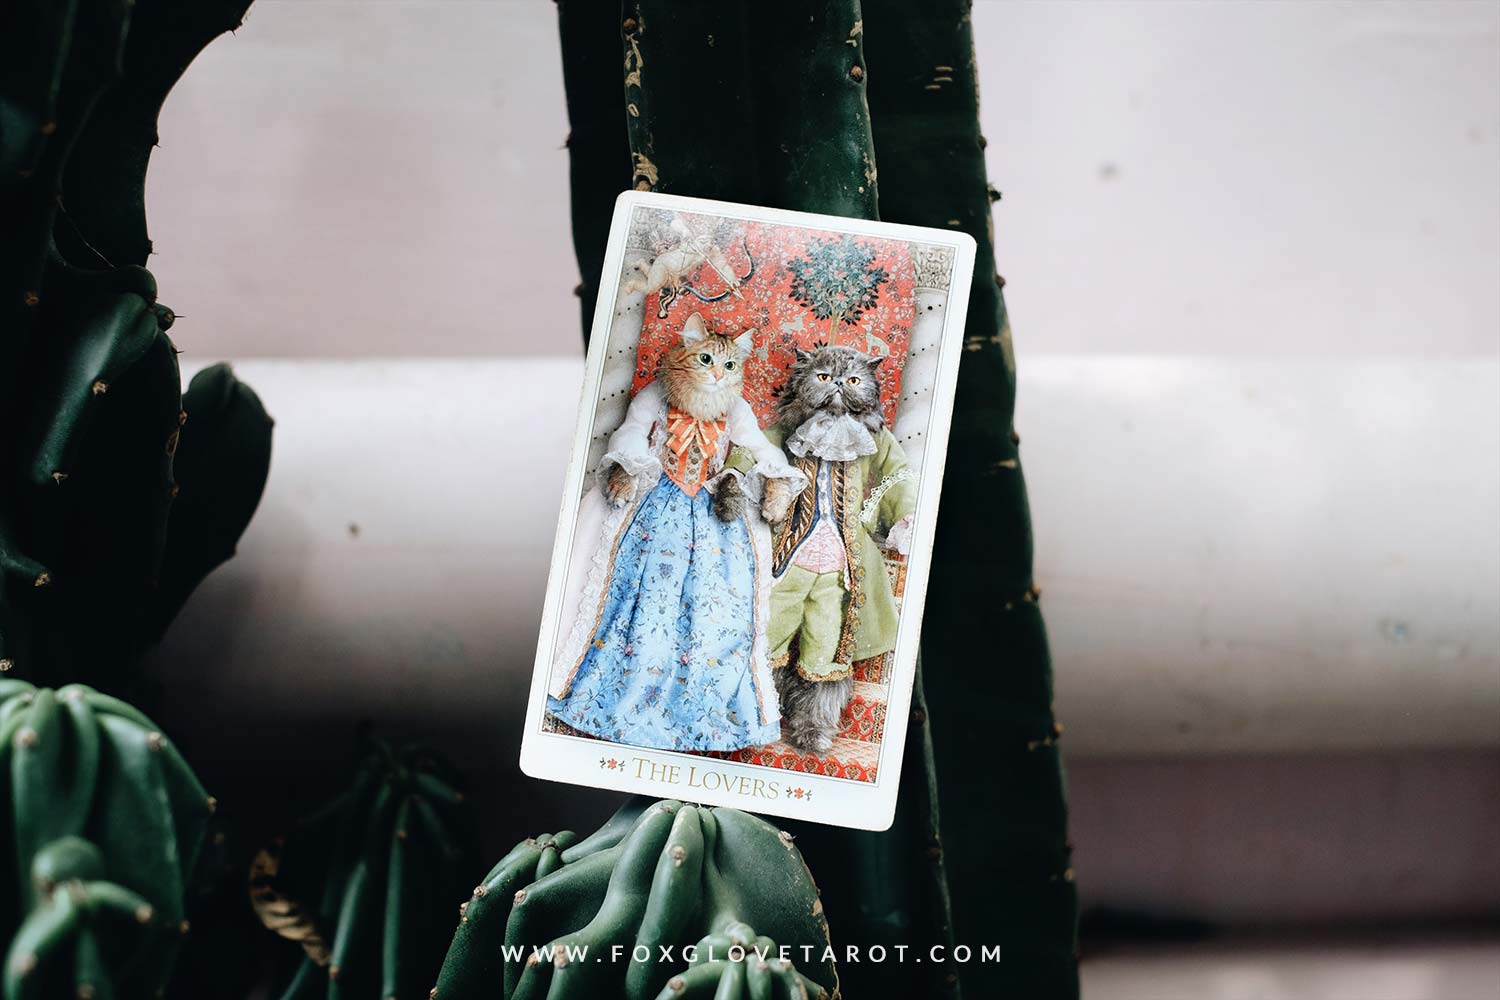 The-Lovers---Foxglove-Tarot-Bali---web.jpg